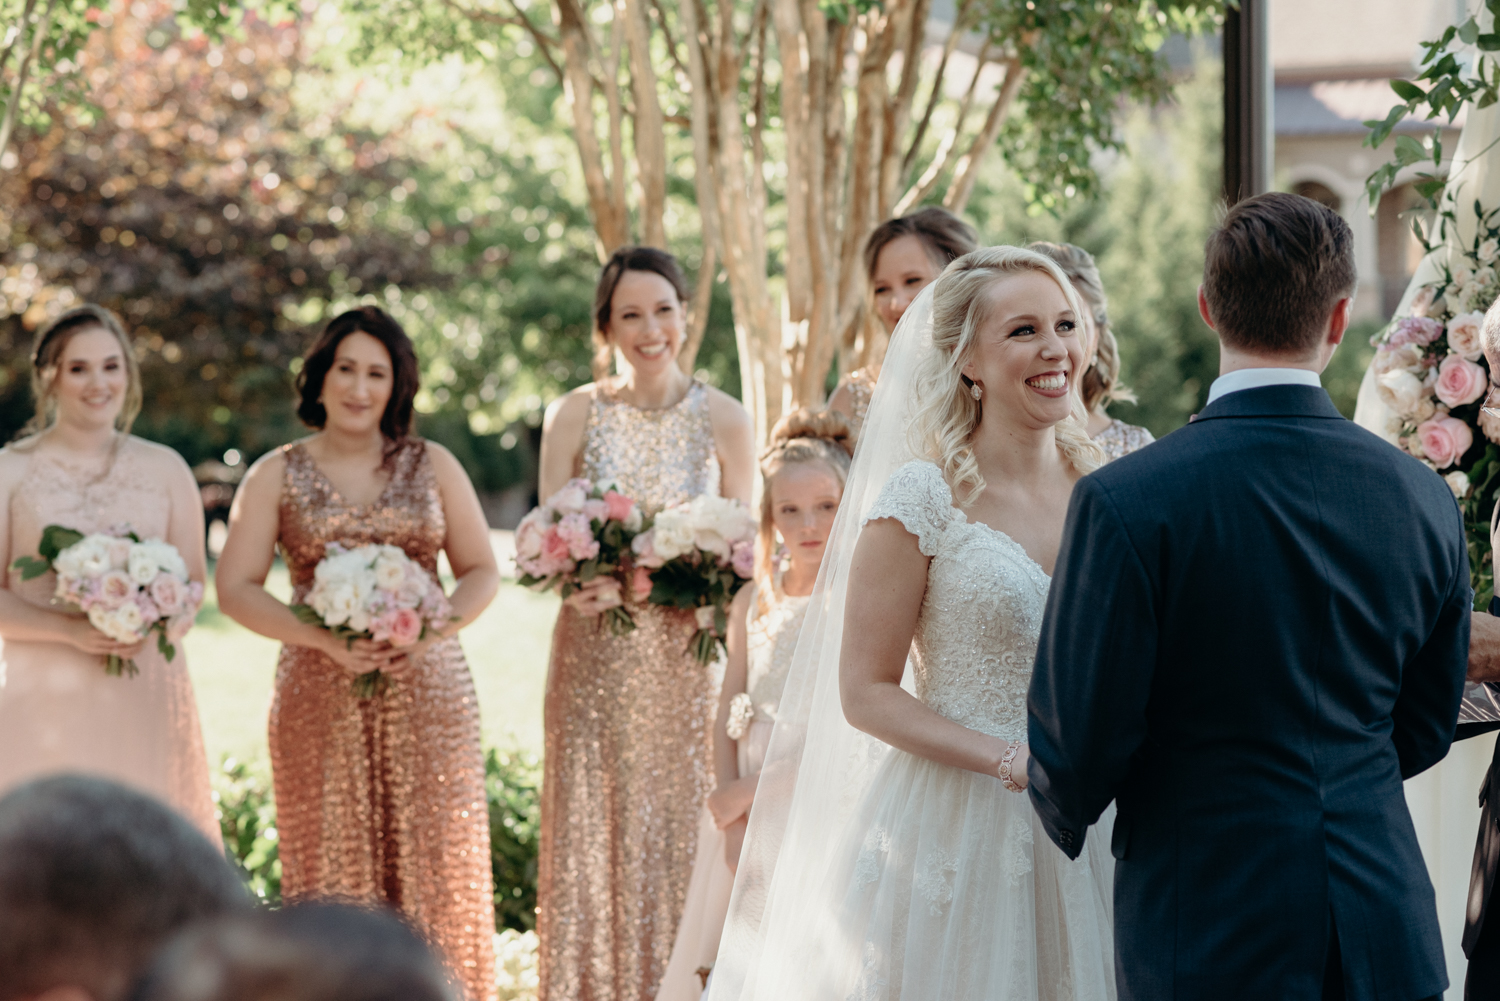 A bride smiles at her groom while her bridesmaids in sparkly dresses look on during a wedding ceremony at Lansdowne Resort.